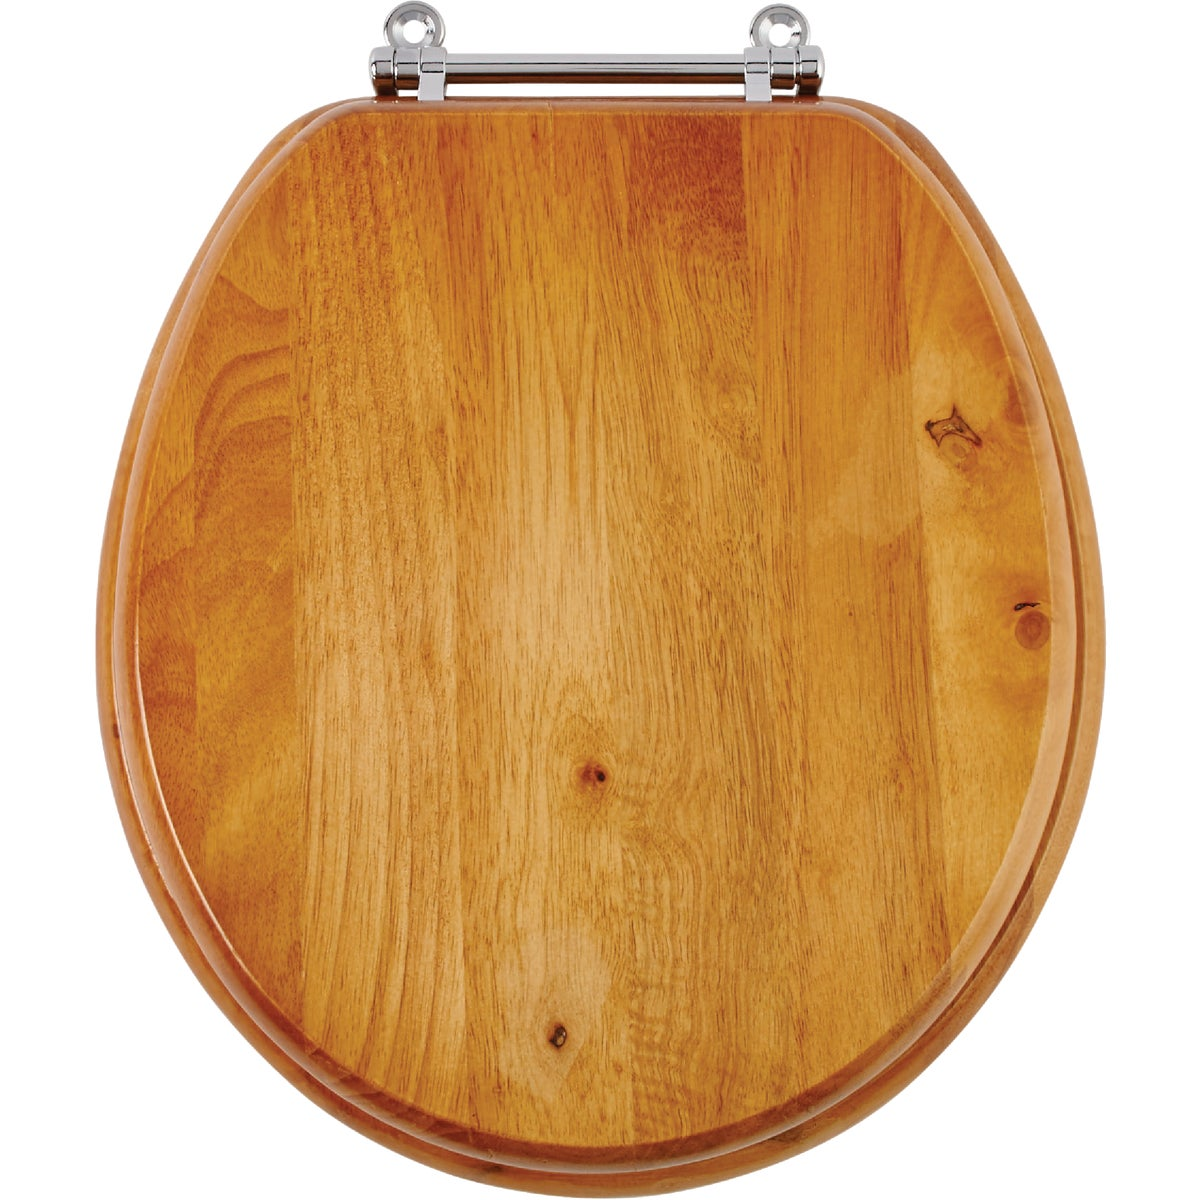 OAK ROUND TOILET SEAT - 10-005 by Do it Best Global Sourcing